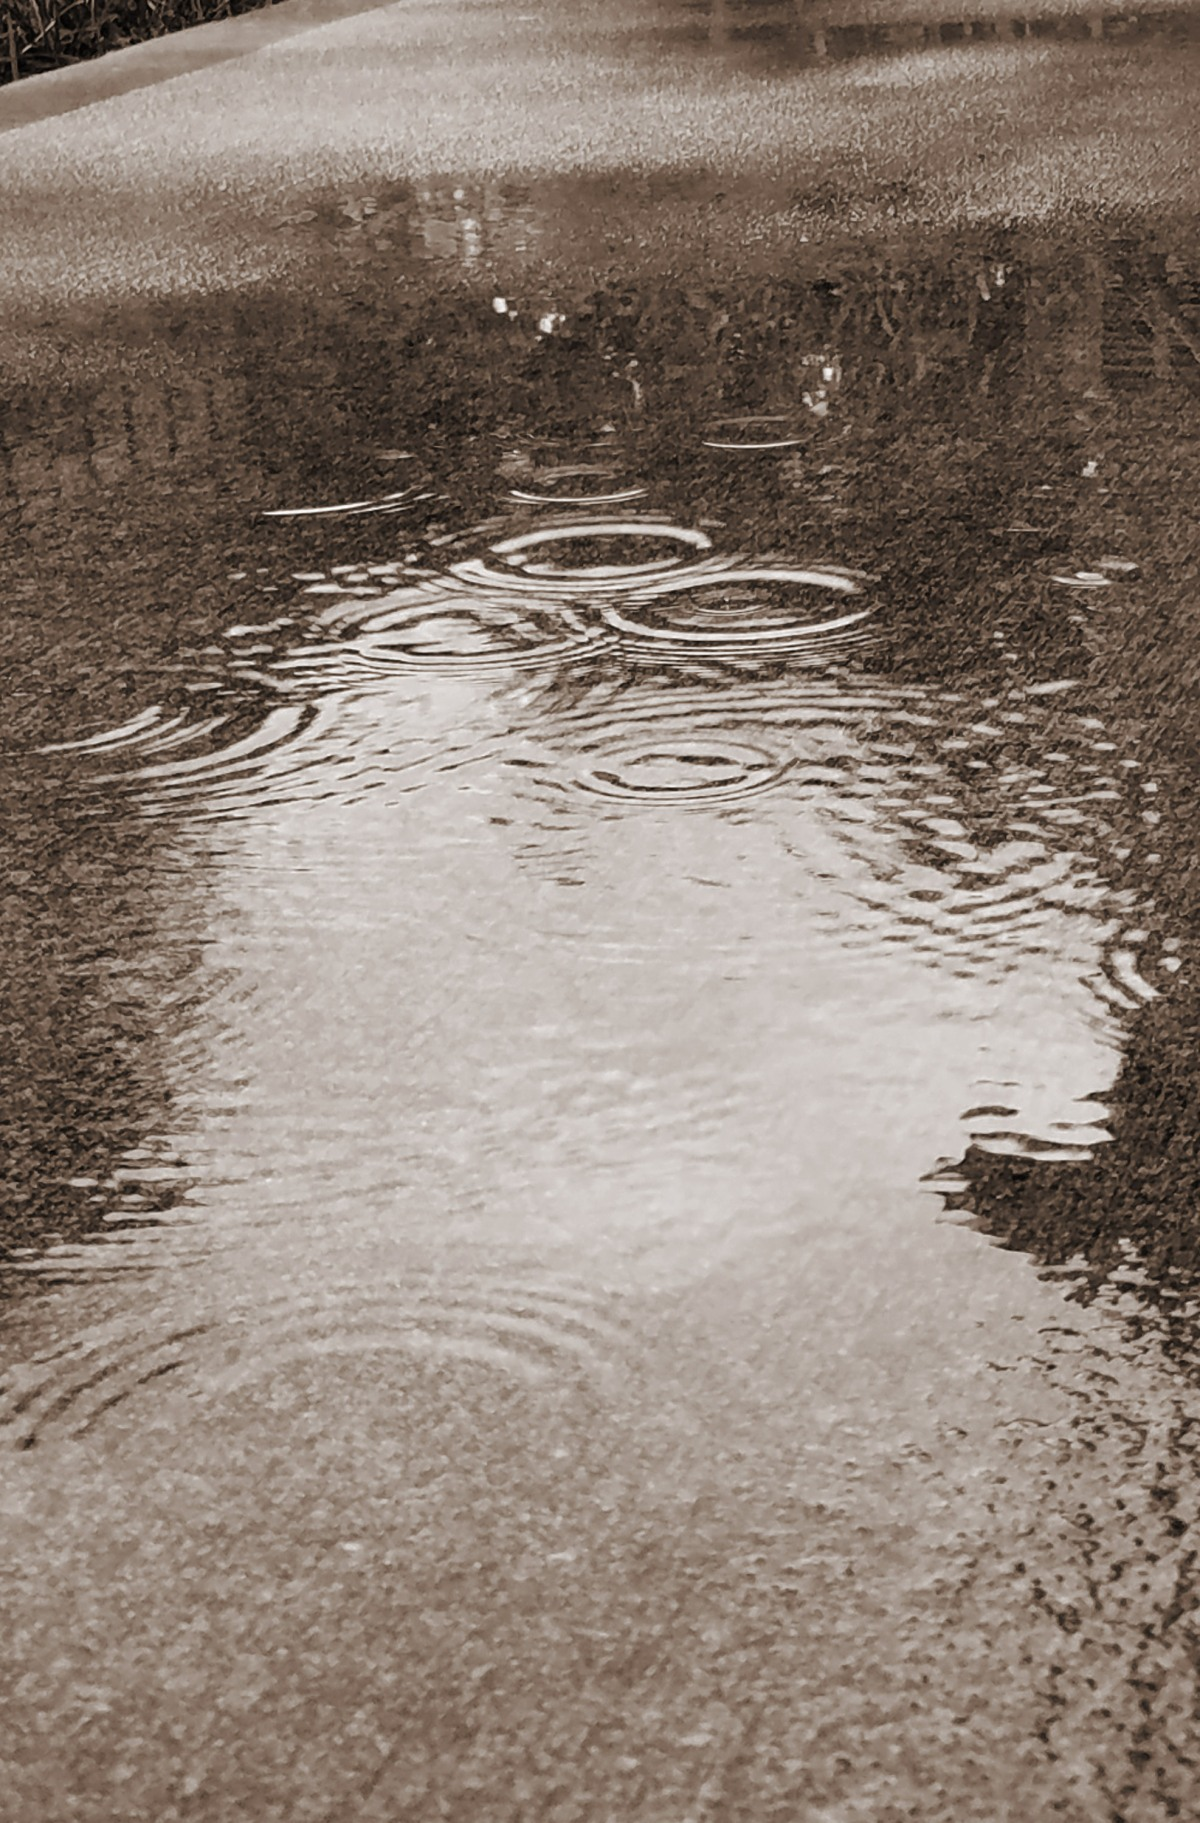 Rain Puddle - Black and White